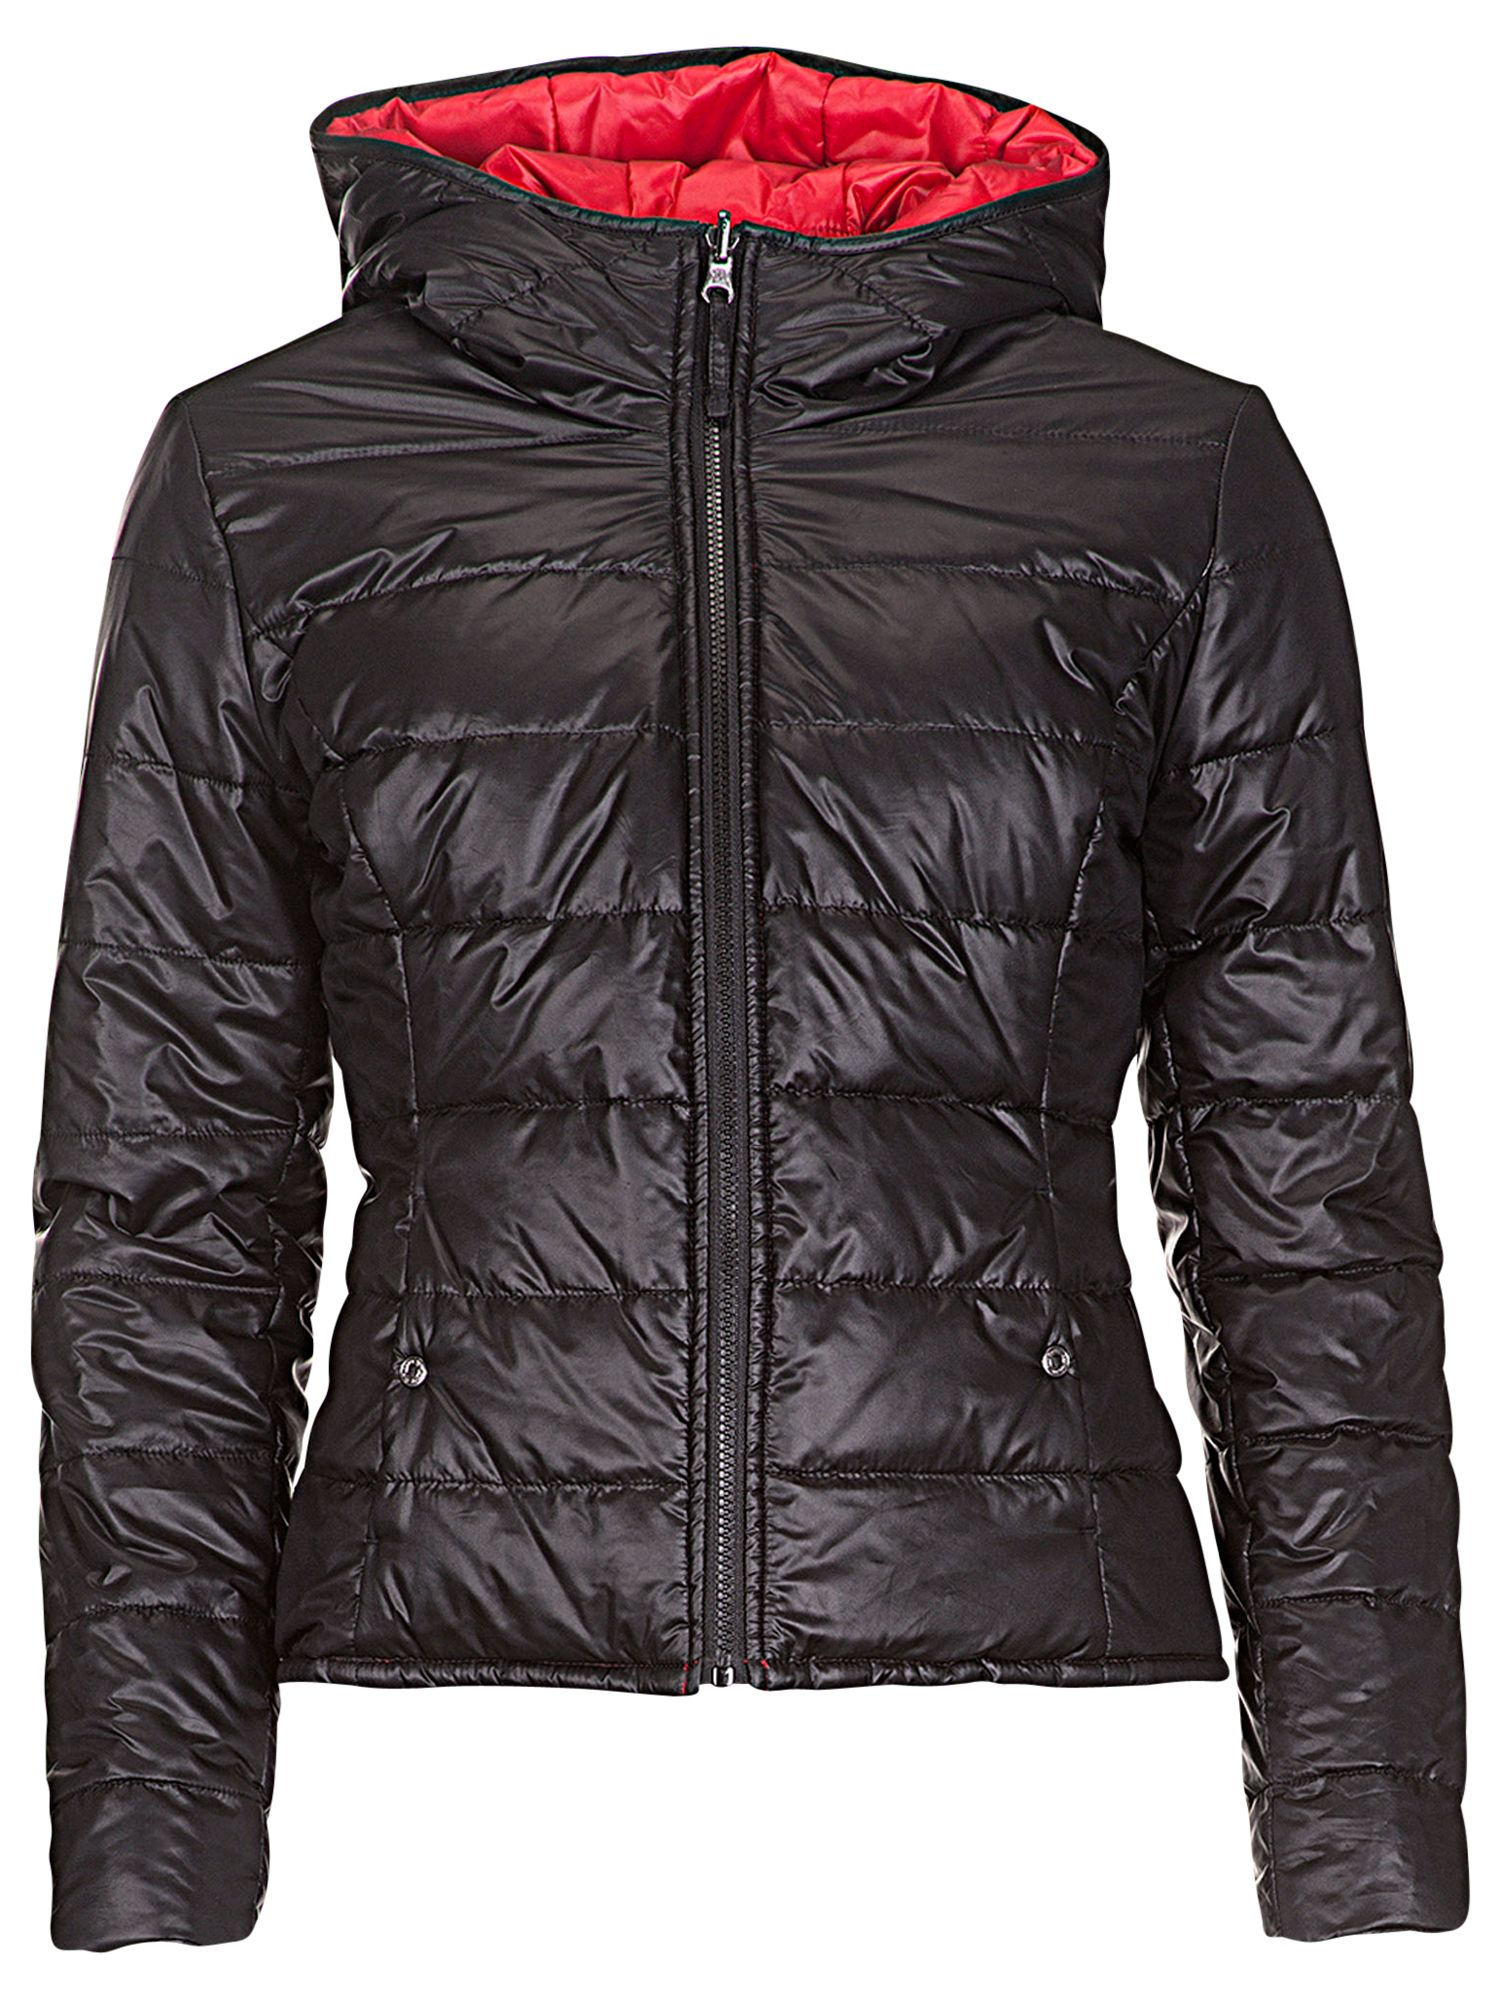 Betty Barclay Reversible Padded Jacket, Black / Red